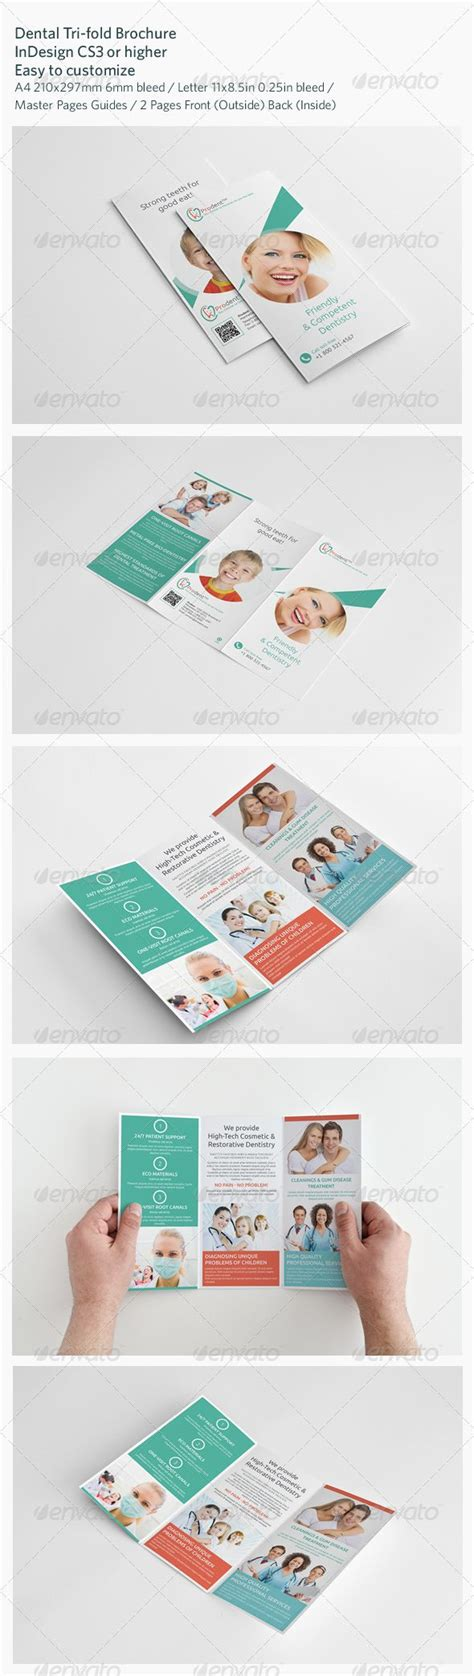 tri fold brochure template indesign cs6 93 best print templates images on print